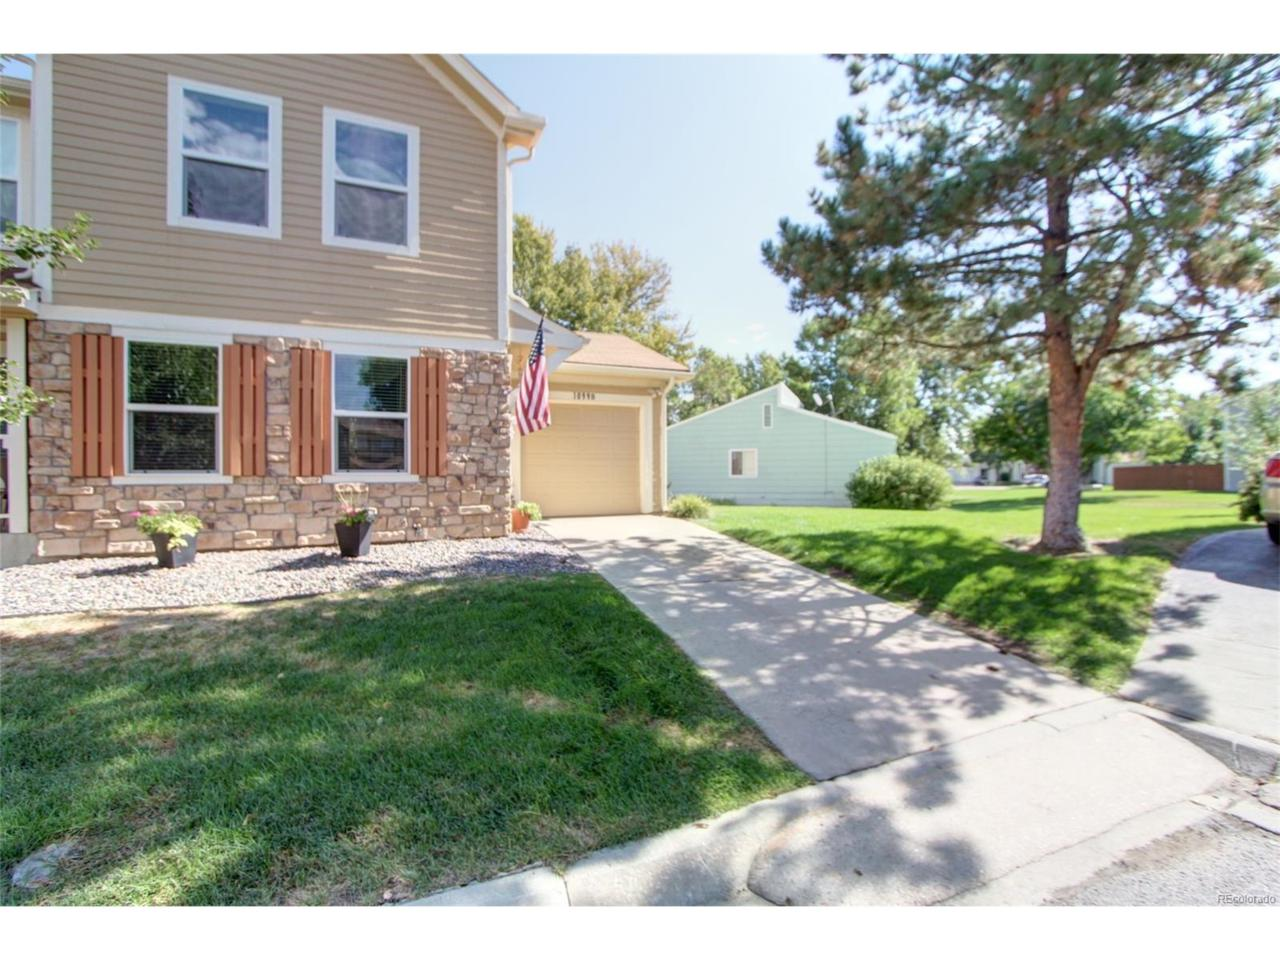 1099 W 133rd Way B, Westminster, CO 80234 (MLS #5894998) :: 8z Real Estate